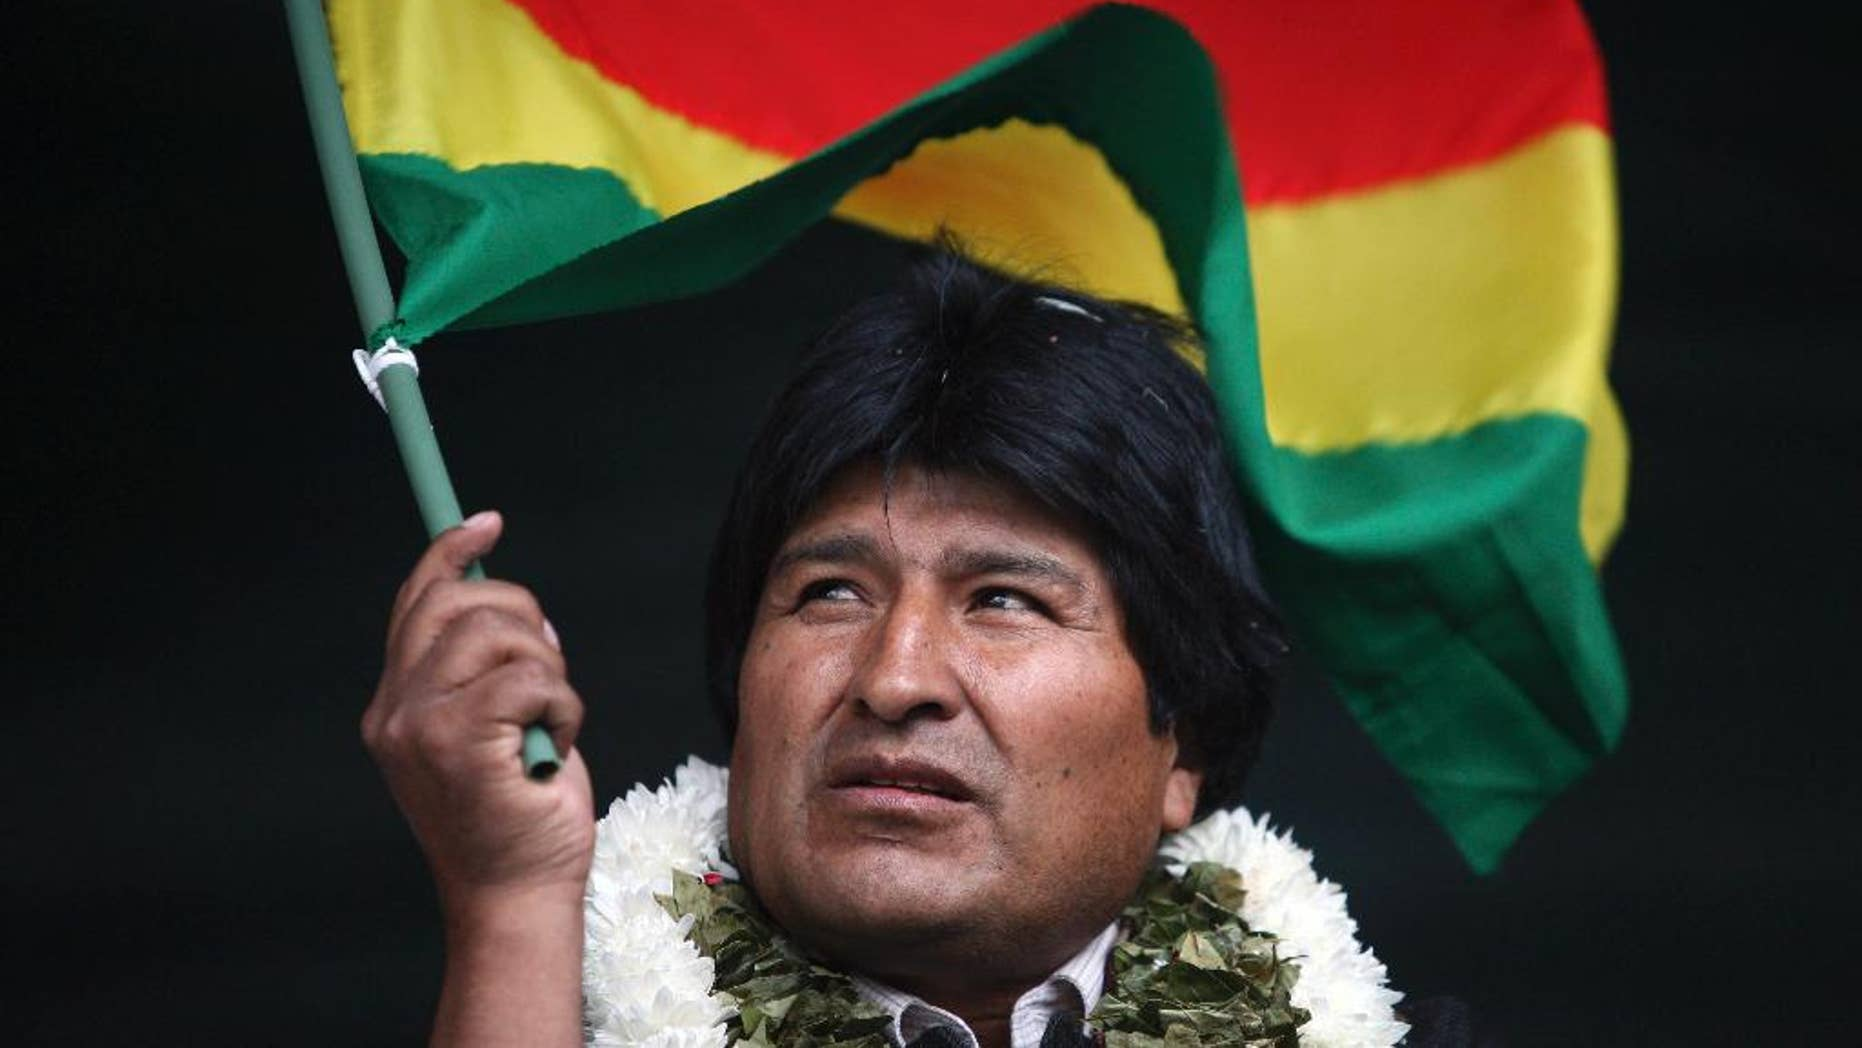 "FILE - In this Jan. 22, 2009 file photo, Bolivia's President Evo Morales waves a Bolivian flag during a rally in support of the proposed new constitution in Cochabamba, Bolivia. Morales inaugurated a $7 million museum on Feb. 2, 2017 in his native village of Orinoca, coined the Museum of the Democratic and Cultural Revolution. Bolivia's political opposition has dubbed it the ""Evo Museum."" (AP Photo/Dado Galdieri, File)"